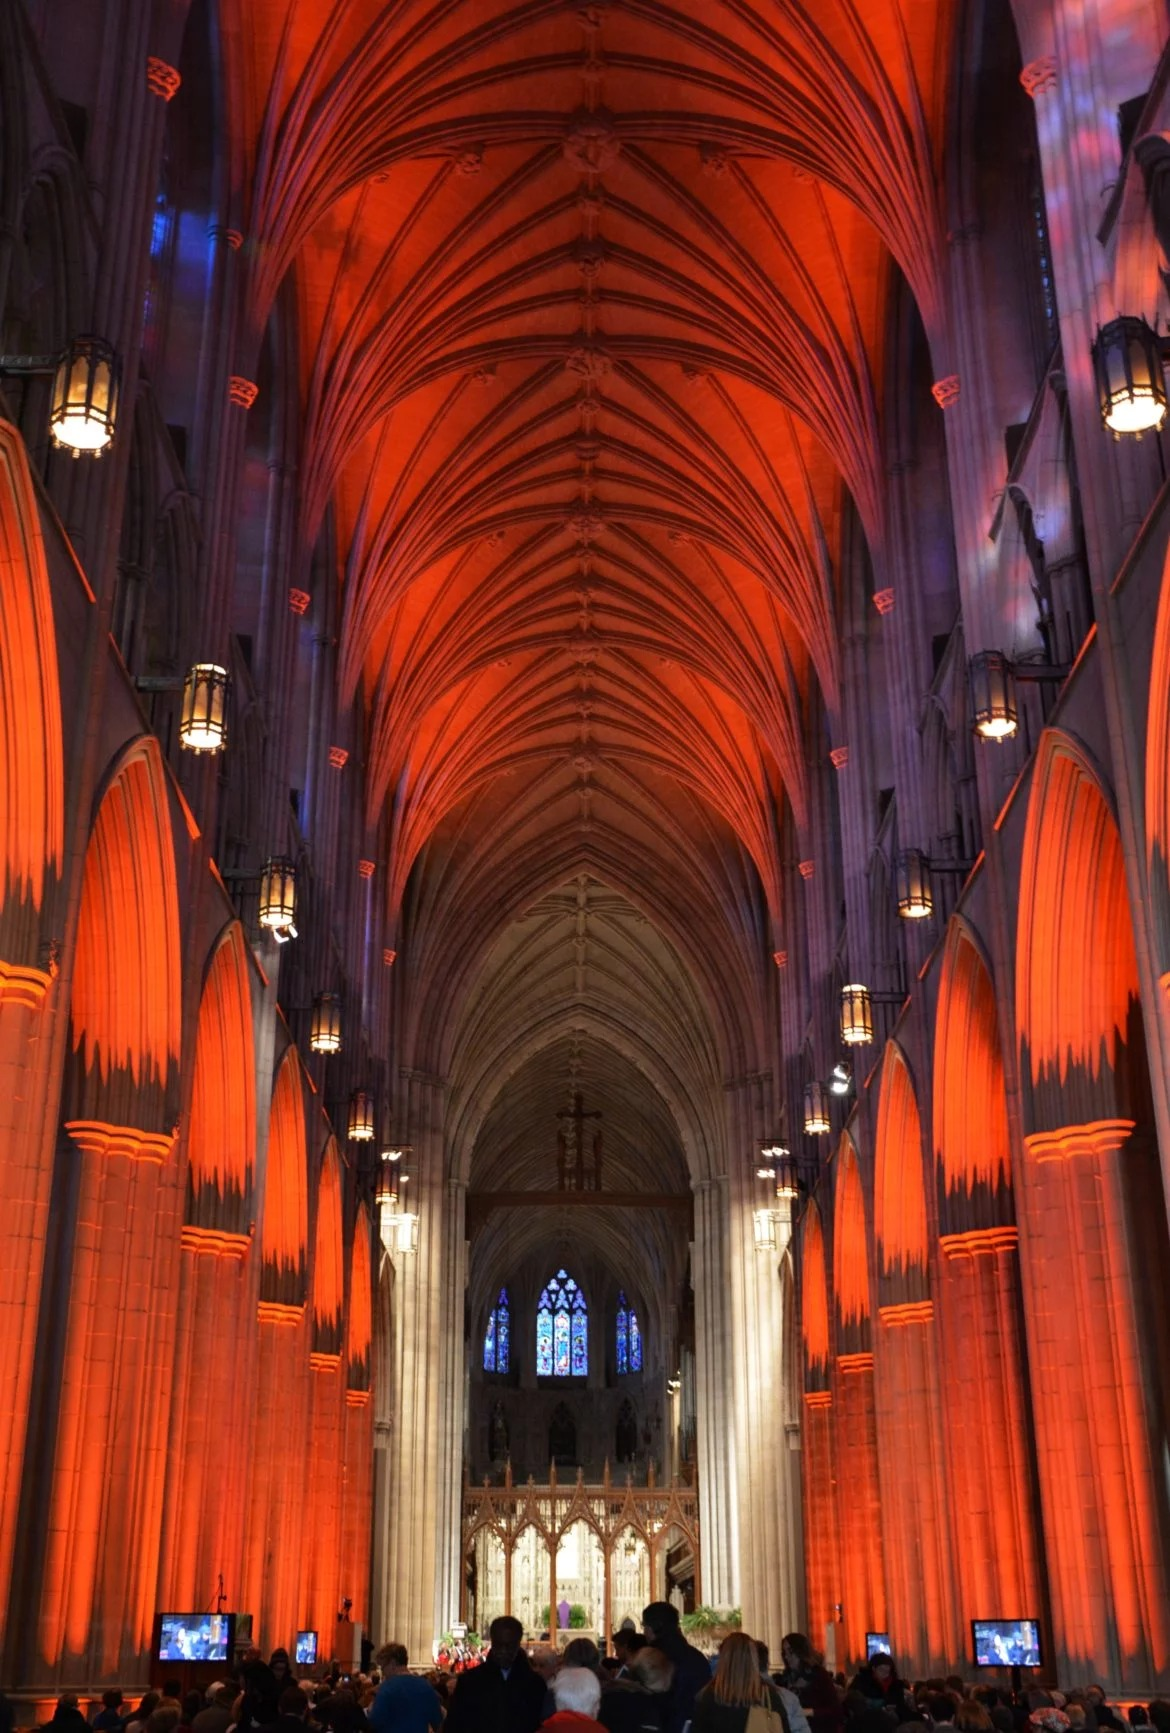 Orange lights illuminate the Washington National Cathedral during a vigil for gun violence victims on March 23, 2018. The vigil was held ahead of the March for Our Lives demonstration. RNS photo by Jack Jenkins.